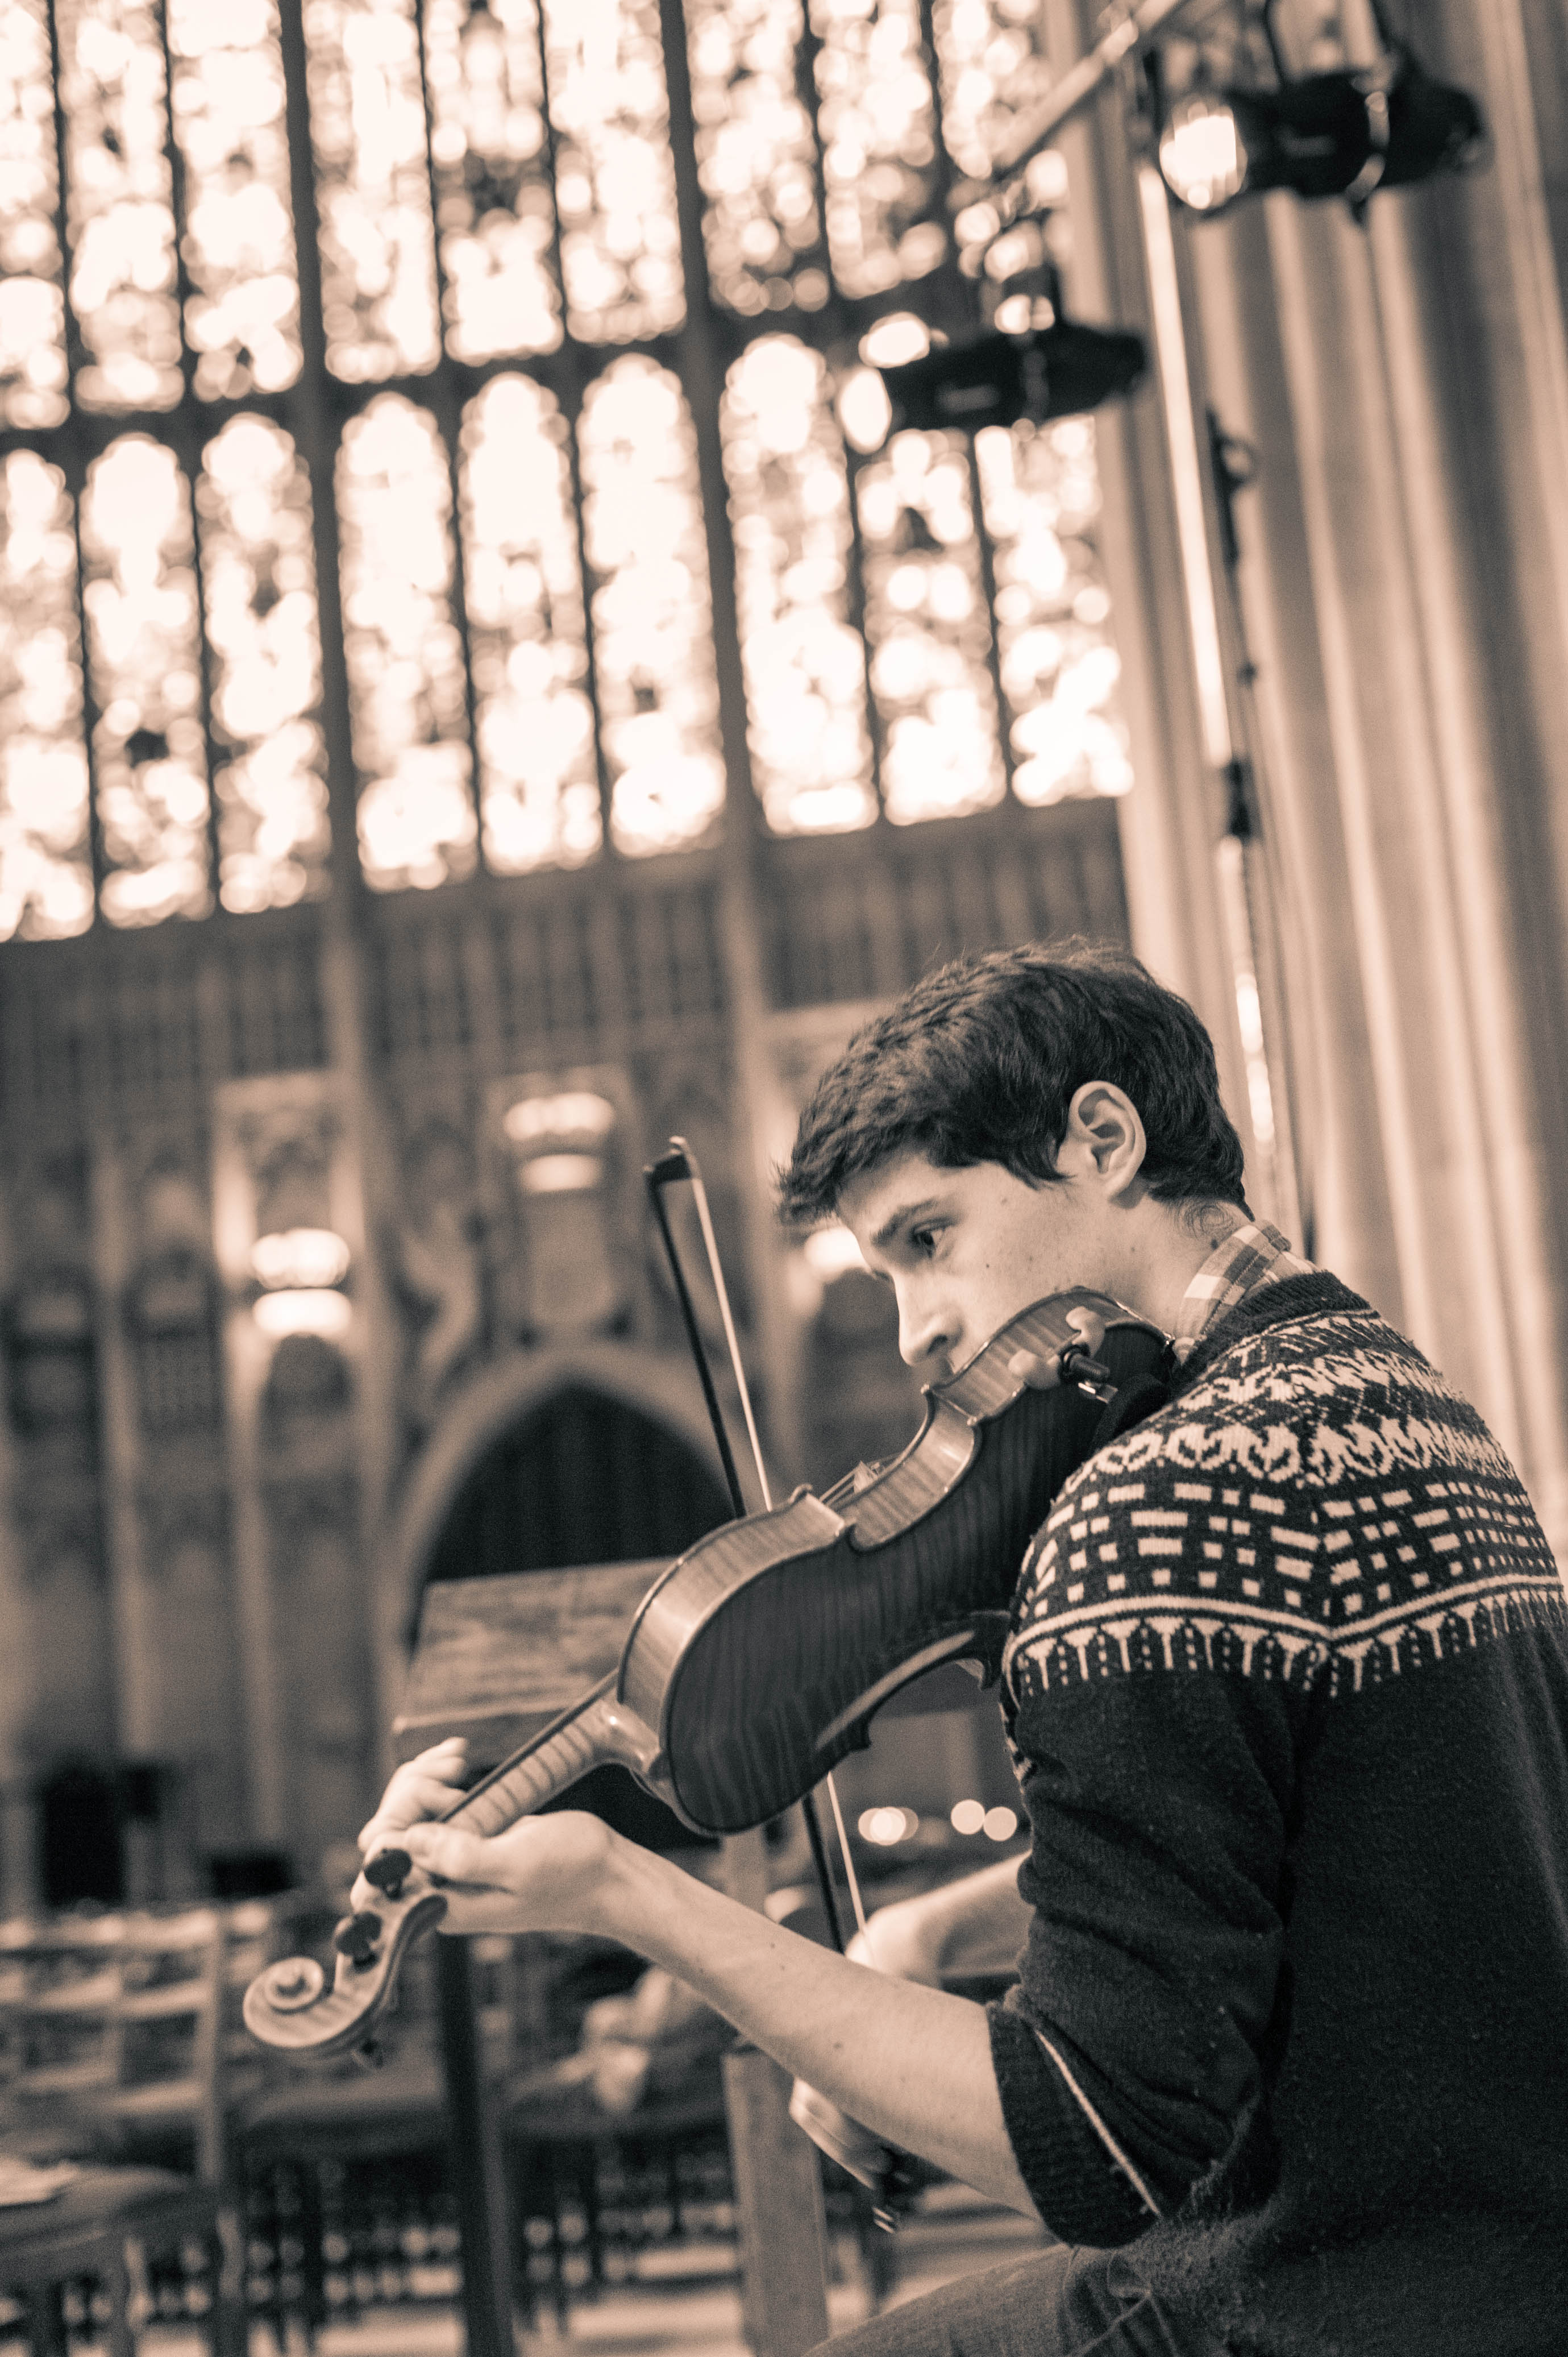 Cambridge University Musical Society practicing in King's College Chapel